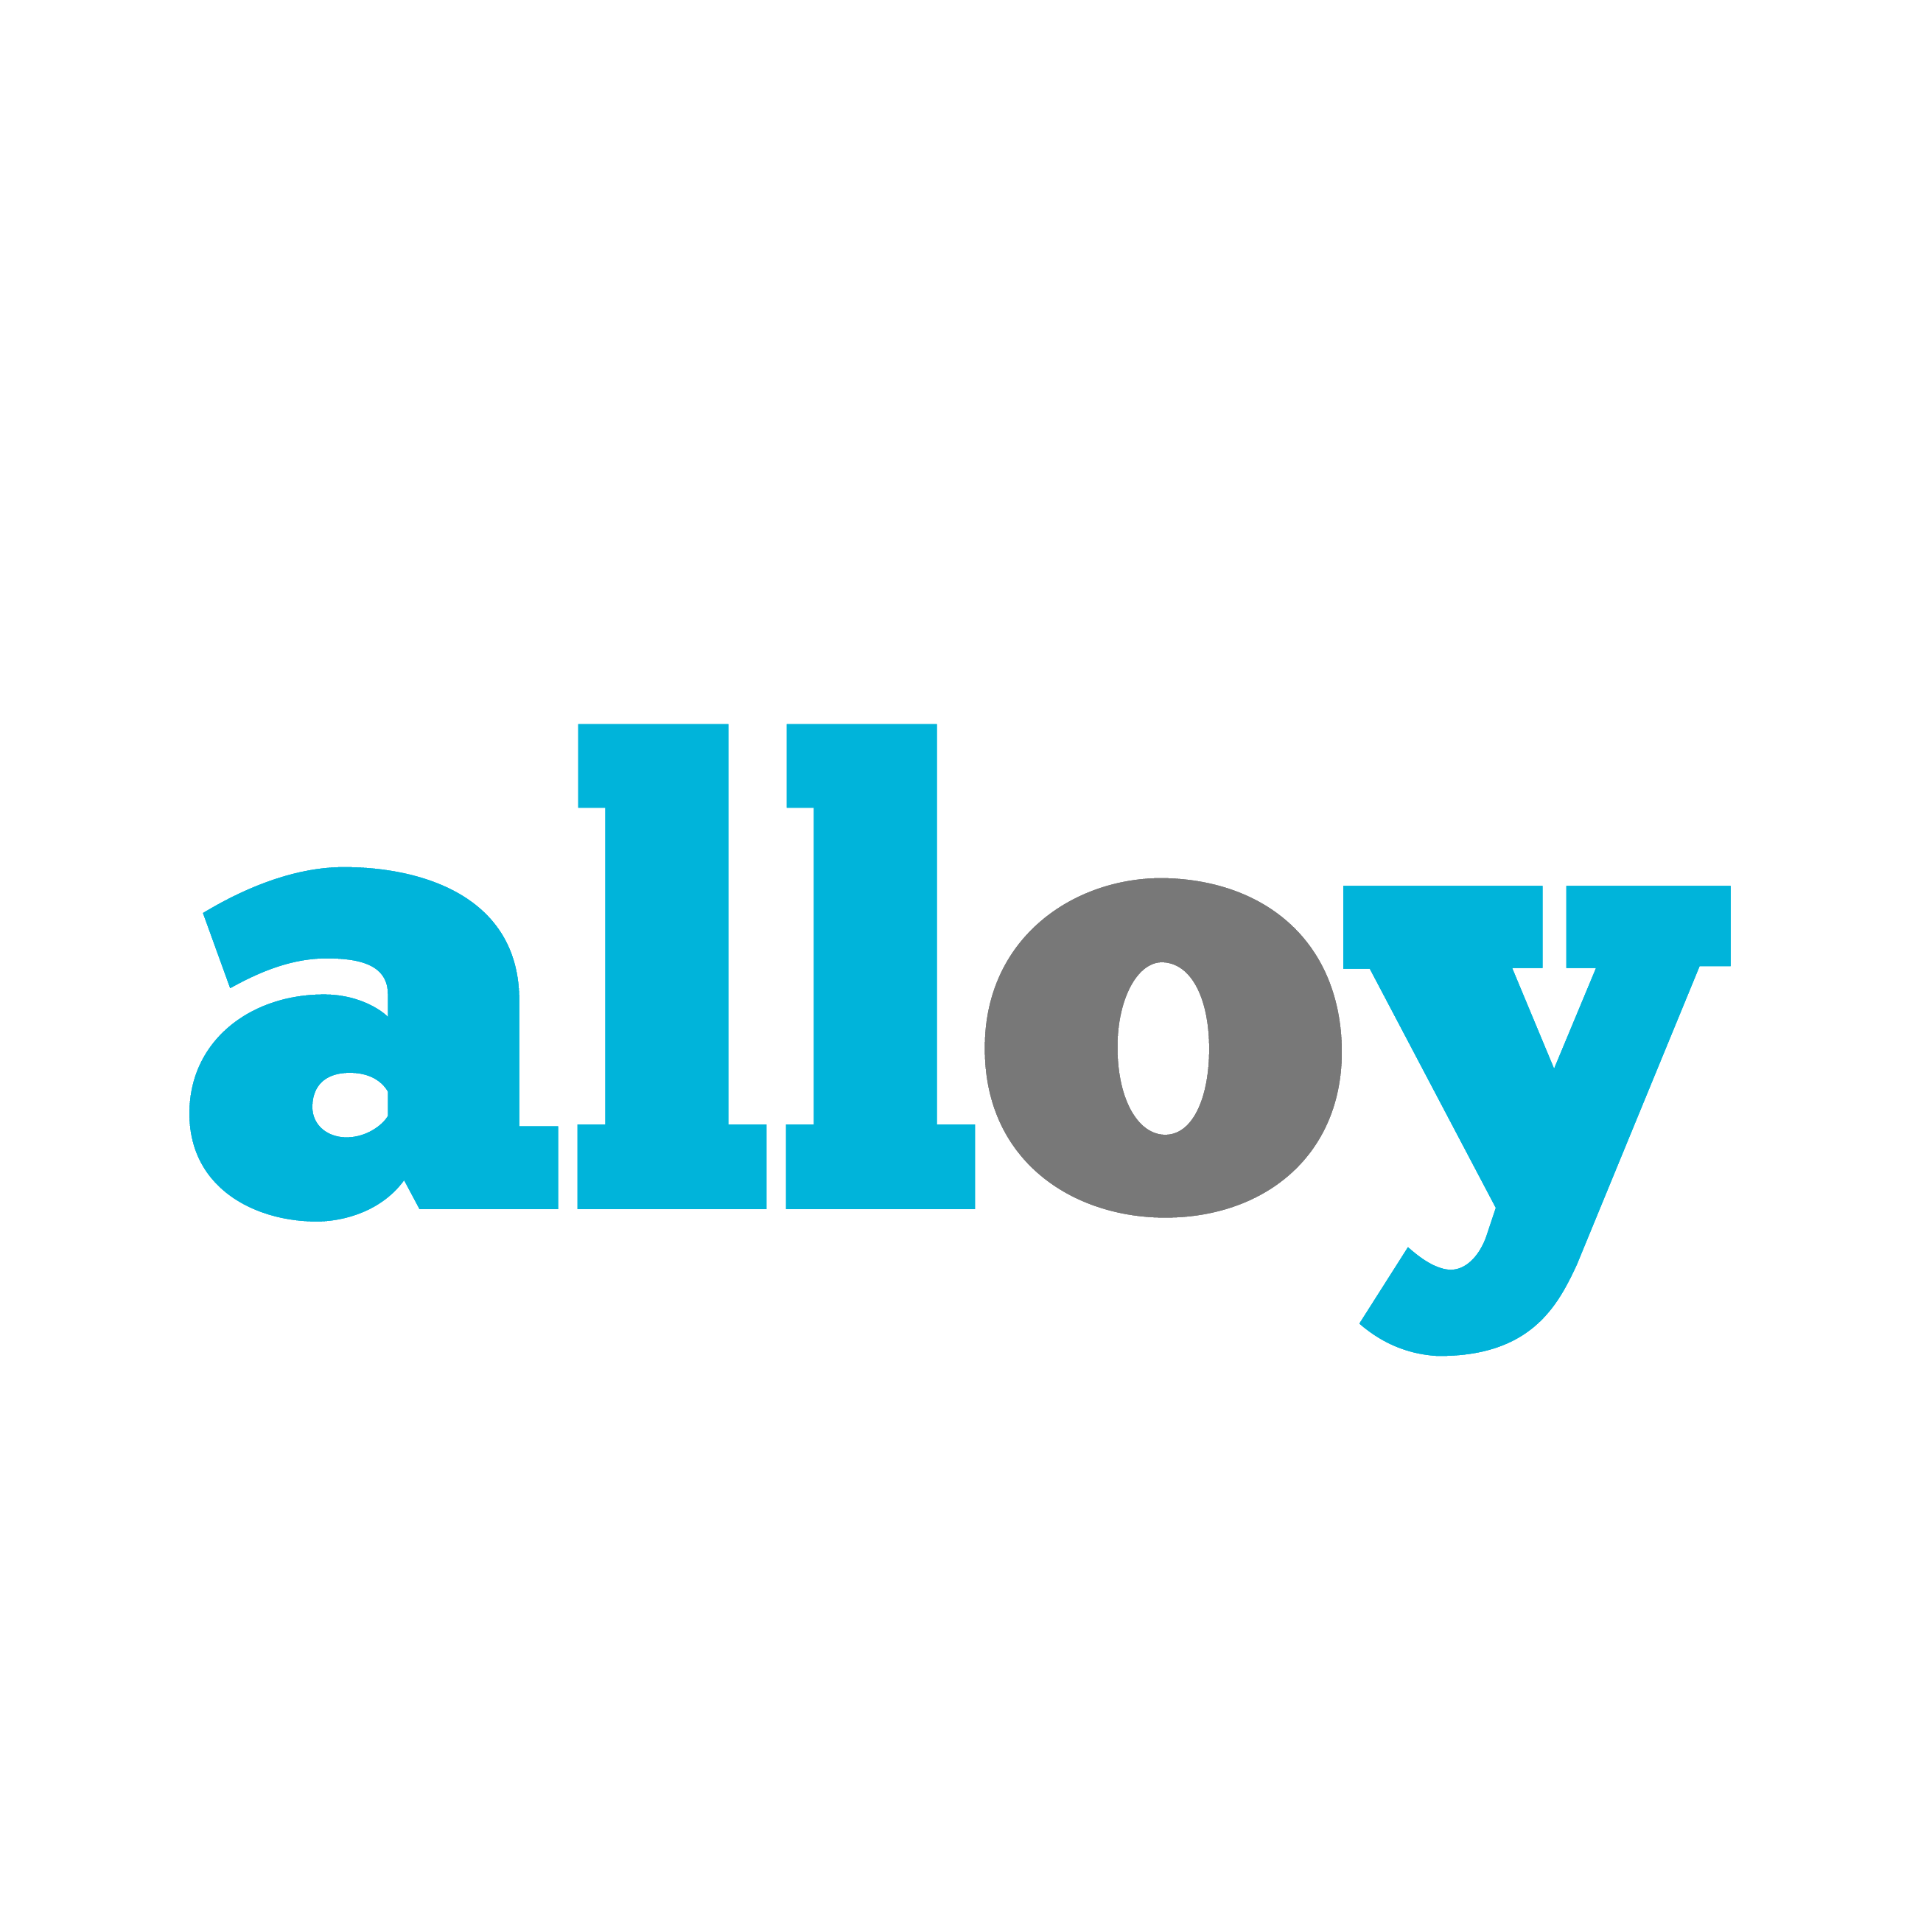 Project Alloy logo